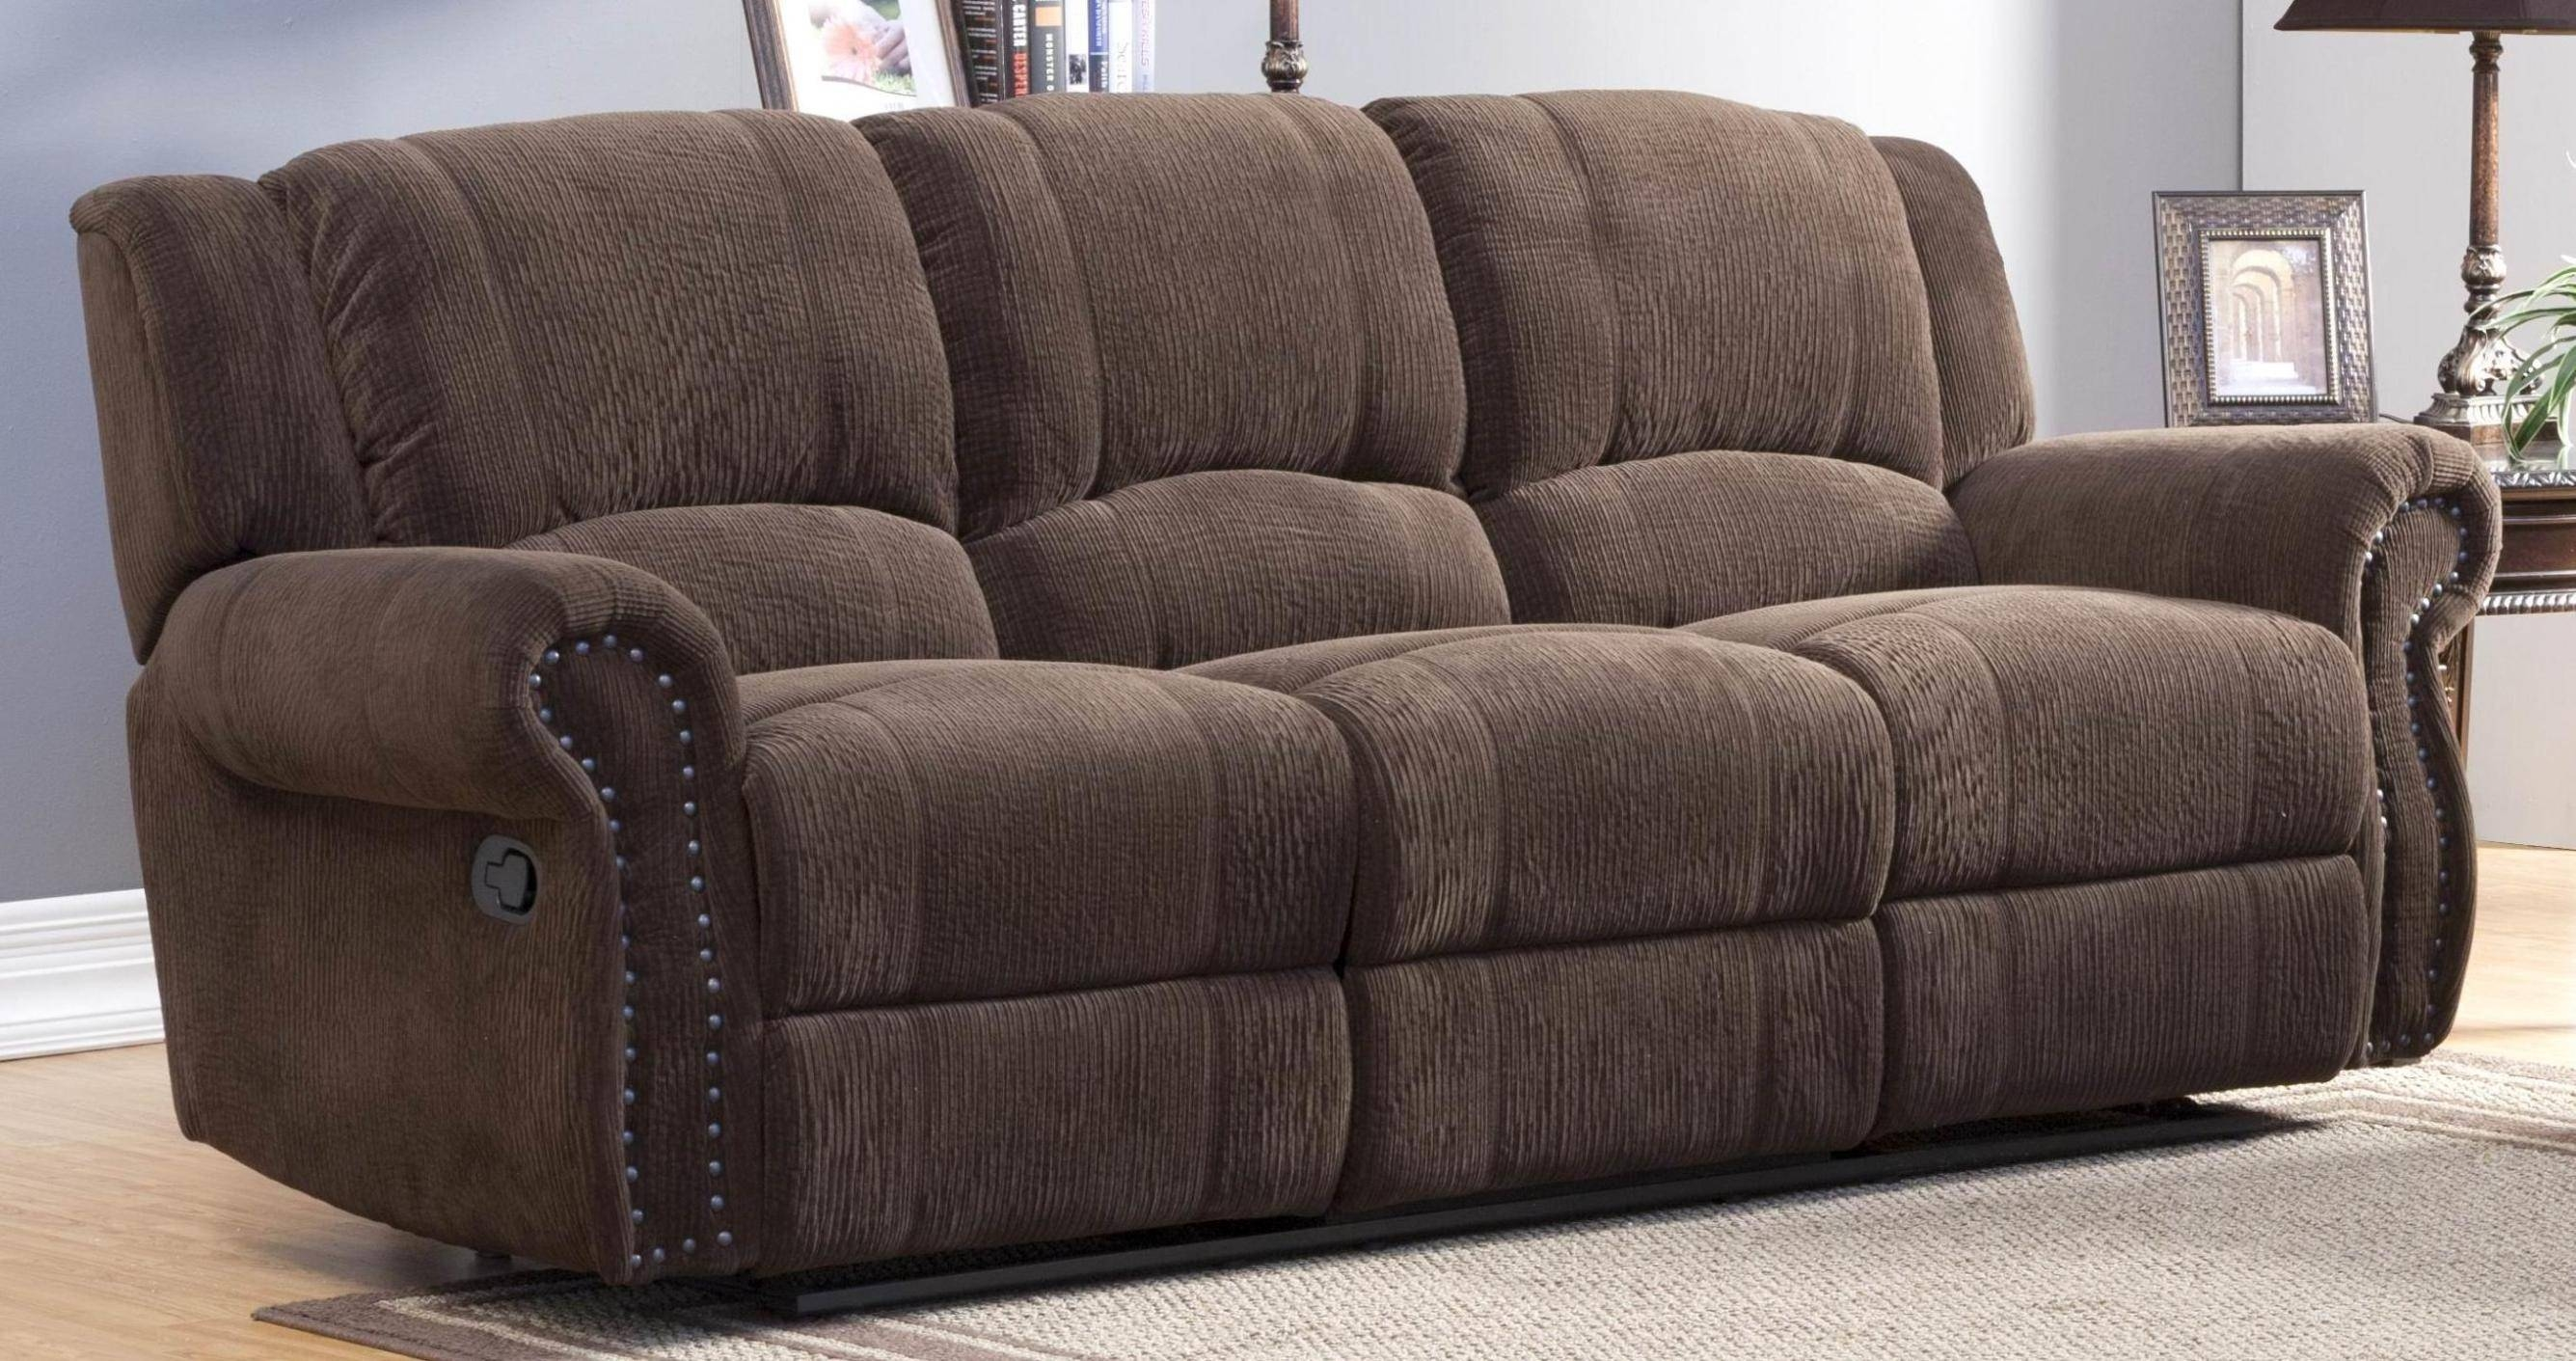 Best Slipcovers For Reclining Sectional Sofas with regard to Jedd Fabric Reclining Sectional Sofa (Image 2 of 30)